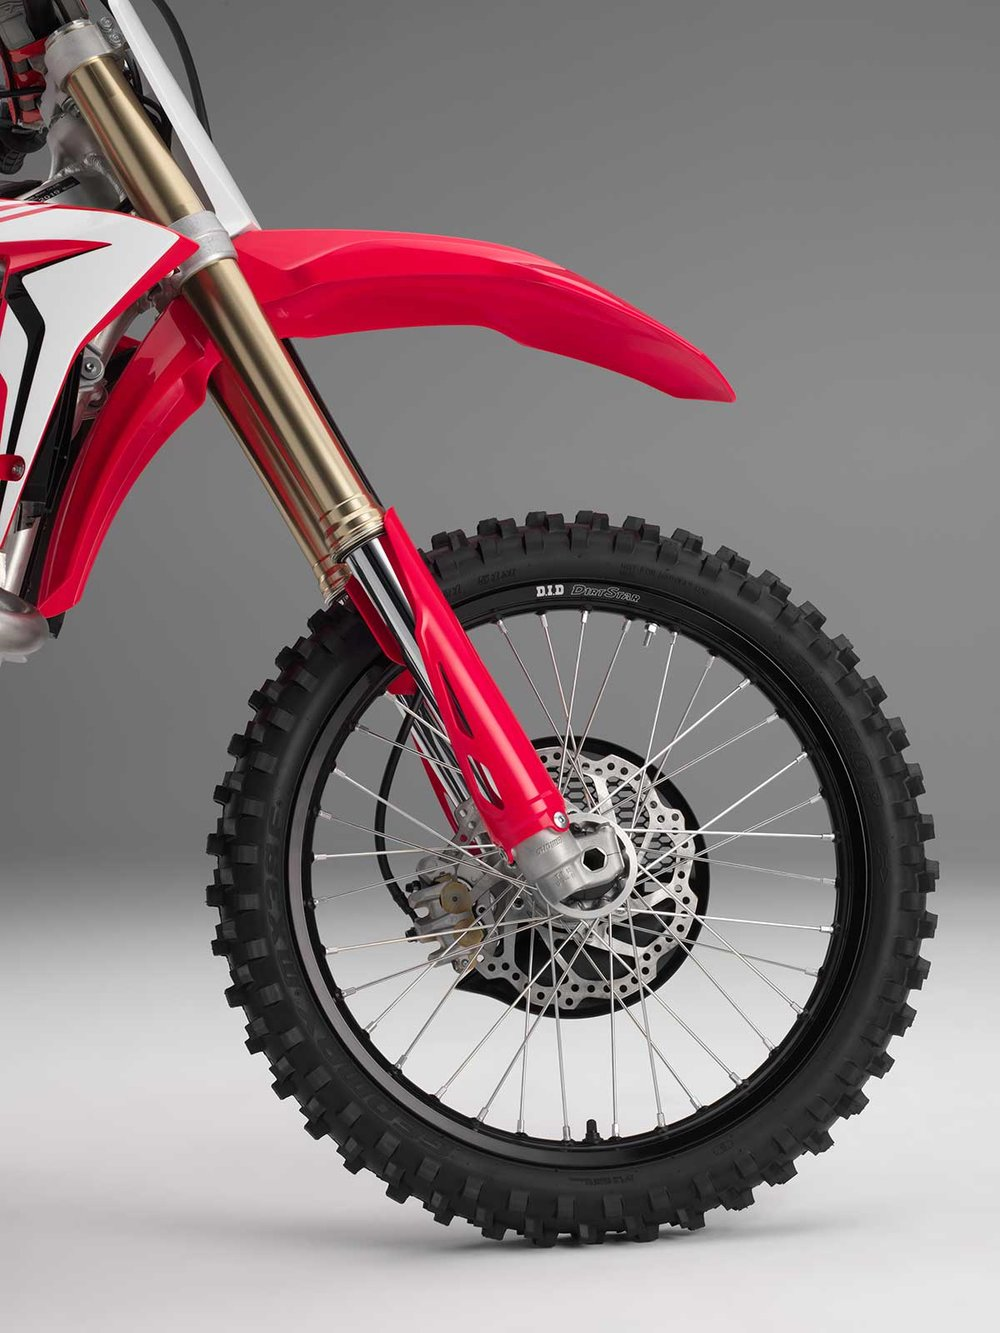 19-Honda-CRF450R_wheel-F.jpg